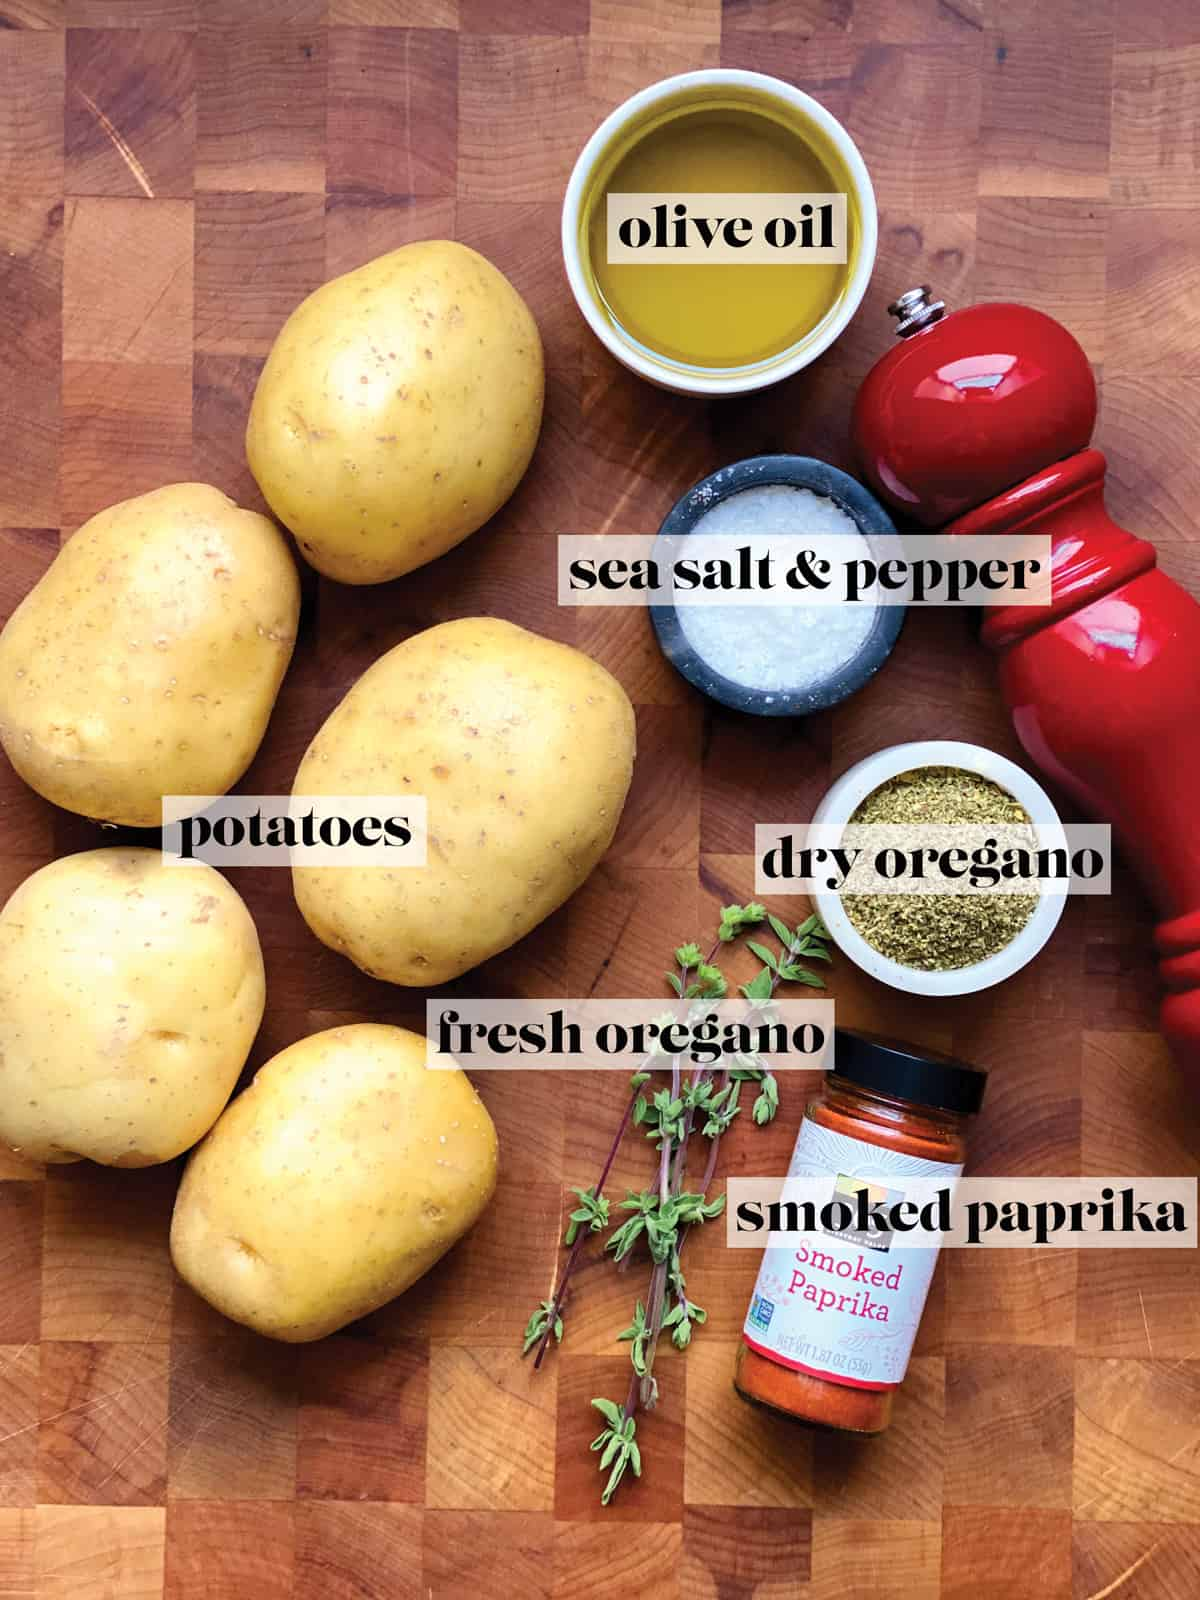 Potatoes, small containers with olive oil, salt, oregano, paprika, oregano sprigs and a pepper grinder on a butcher block.